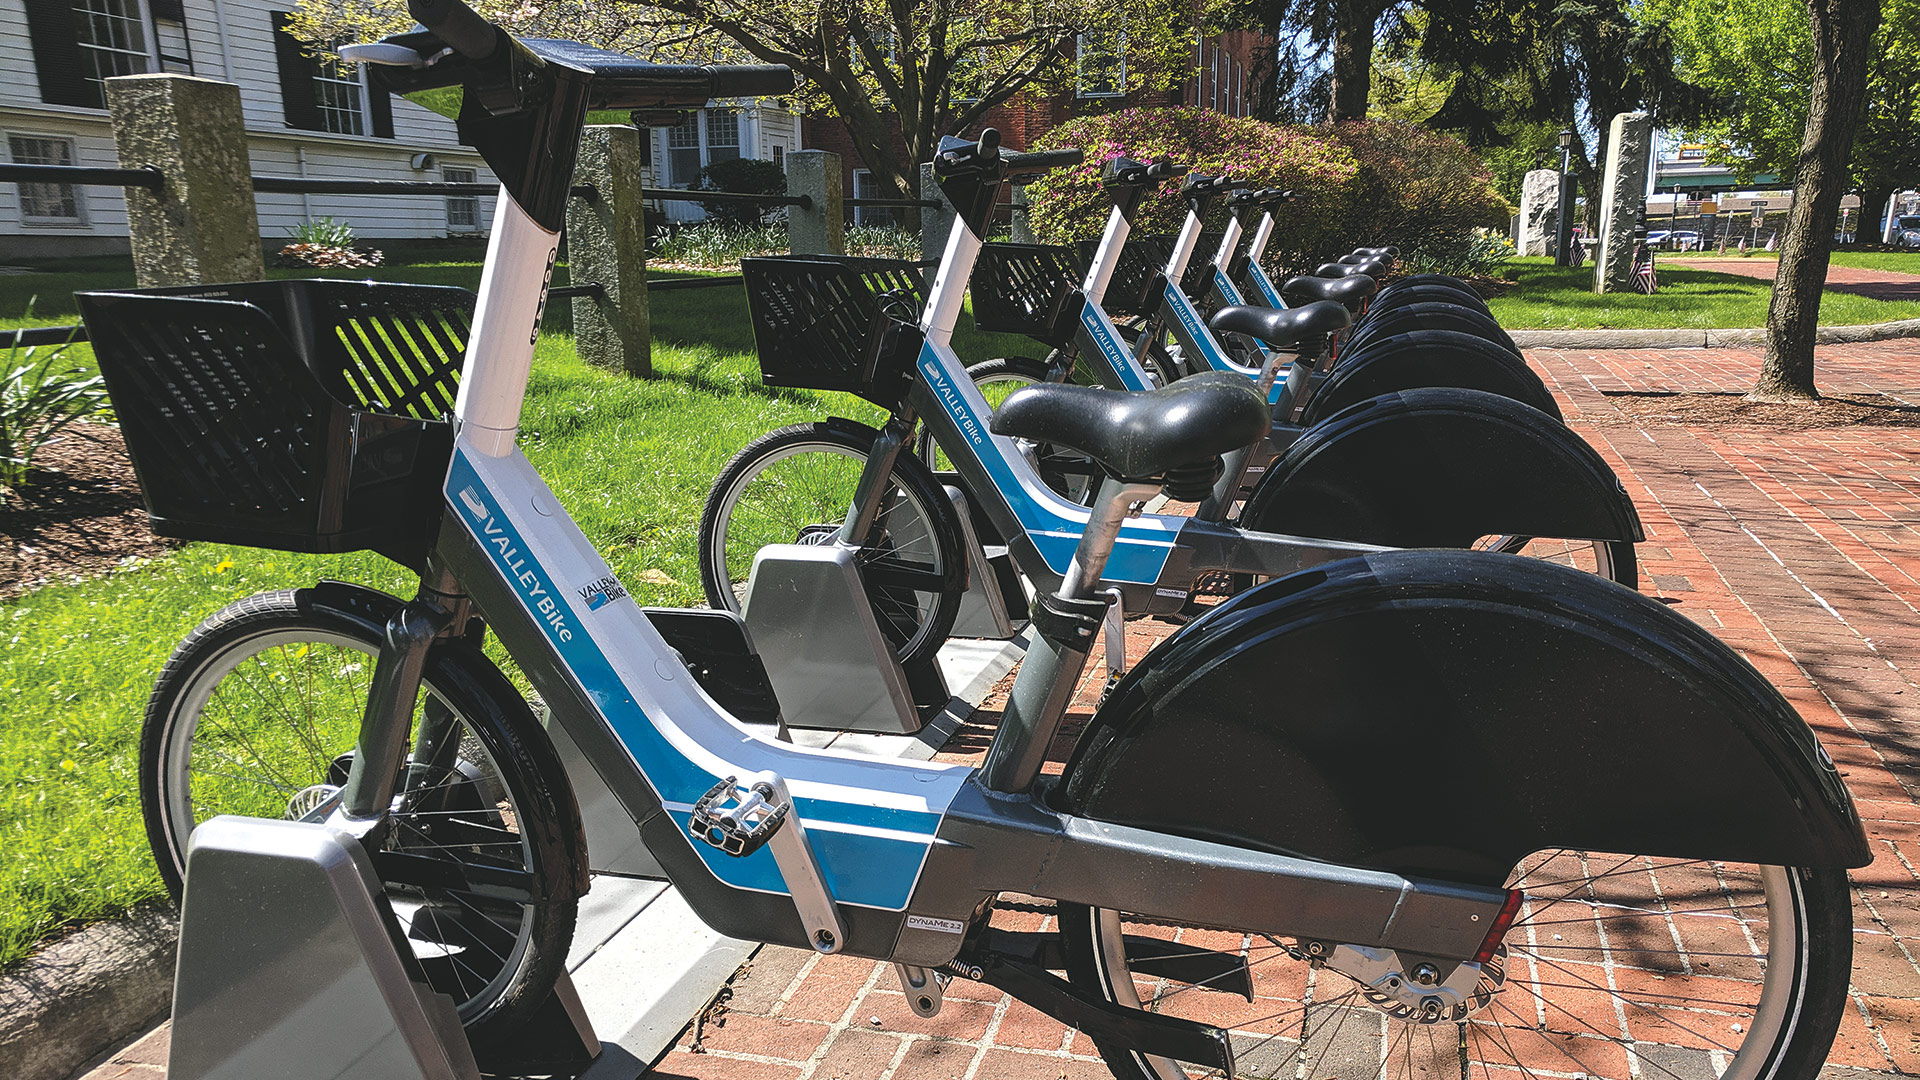 ValleyBike, a regional bike-sharing program, represents just one of the many ways the landscape has changed during Tim Brennan's tenure leading the PVPC.